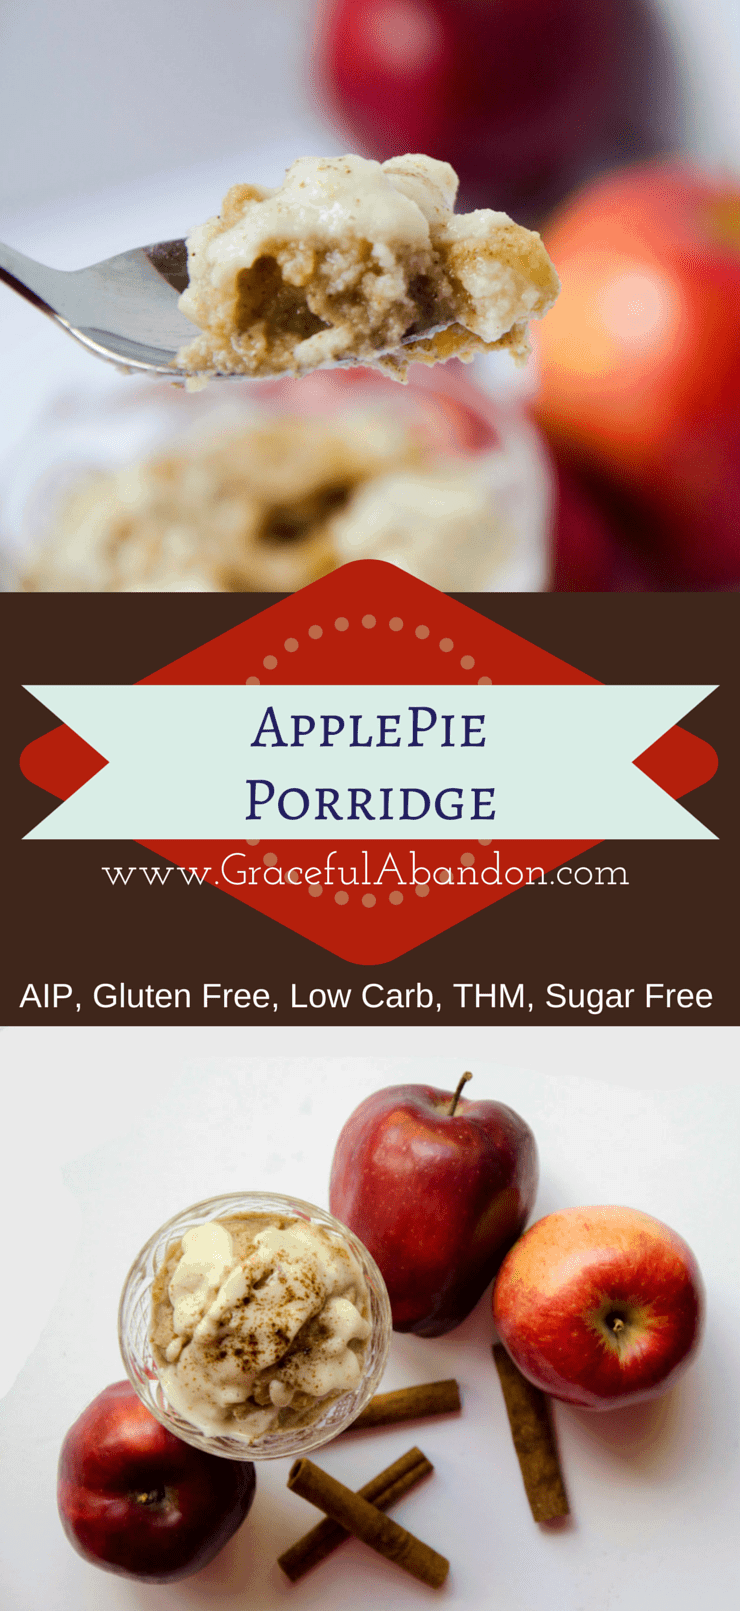 Graceful Abandon- This porridge tastes just like apple pie and is compliant with the AutoImmune Paleo protocol, THM, low carb, gluten free, and sugar free diets